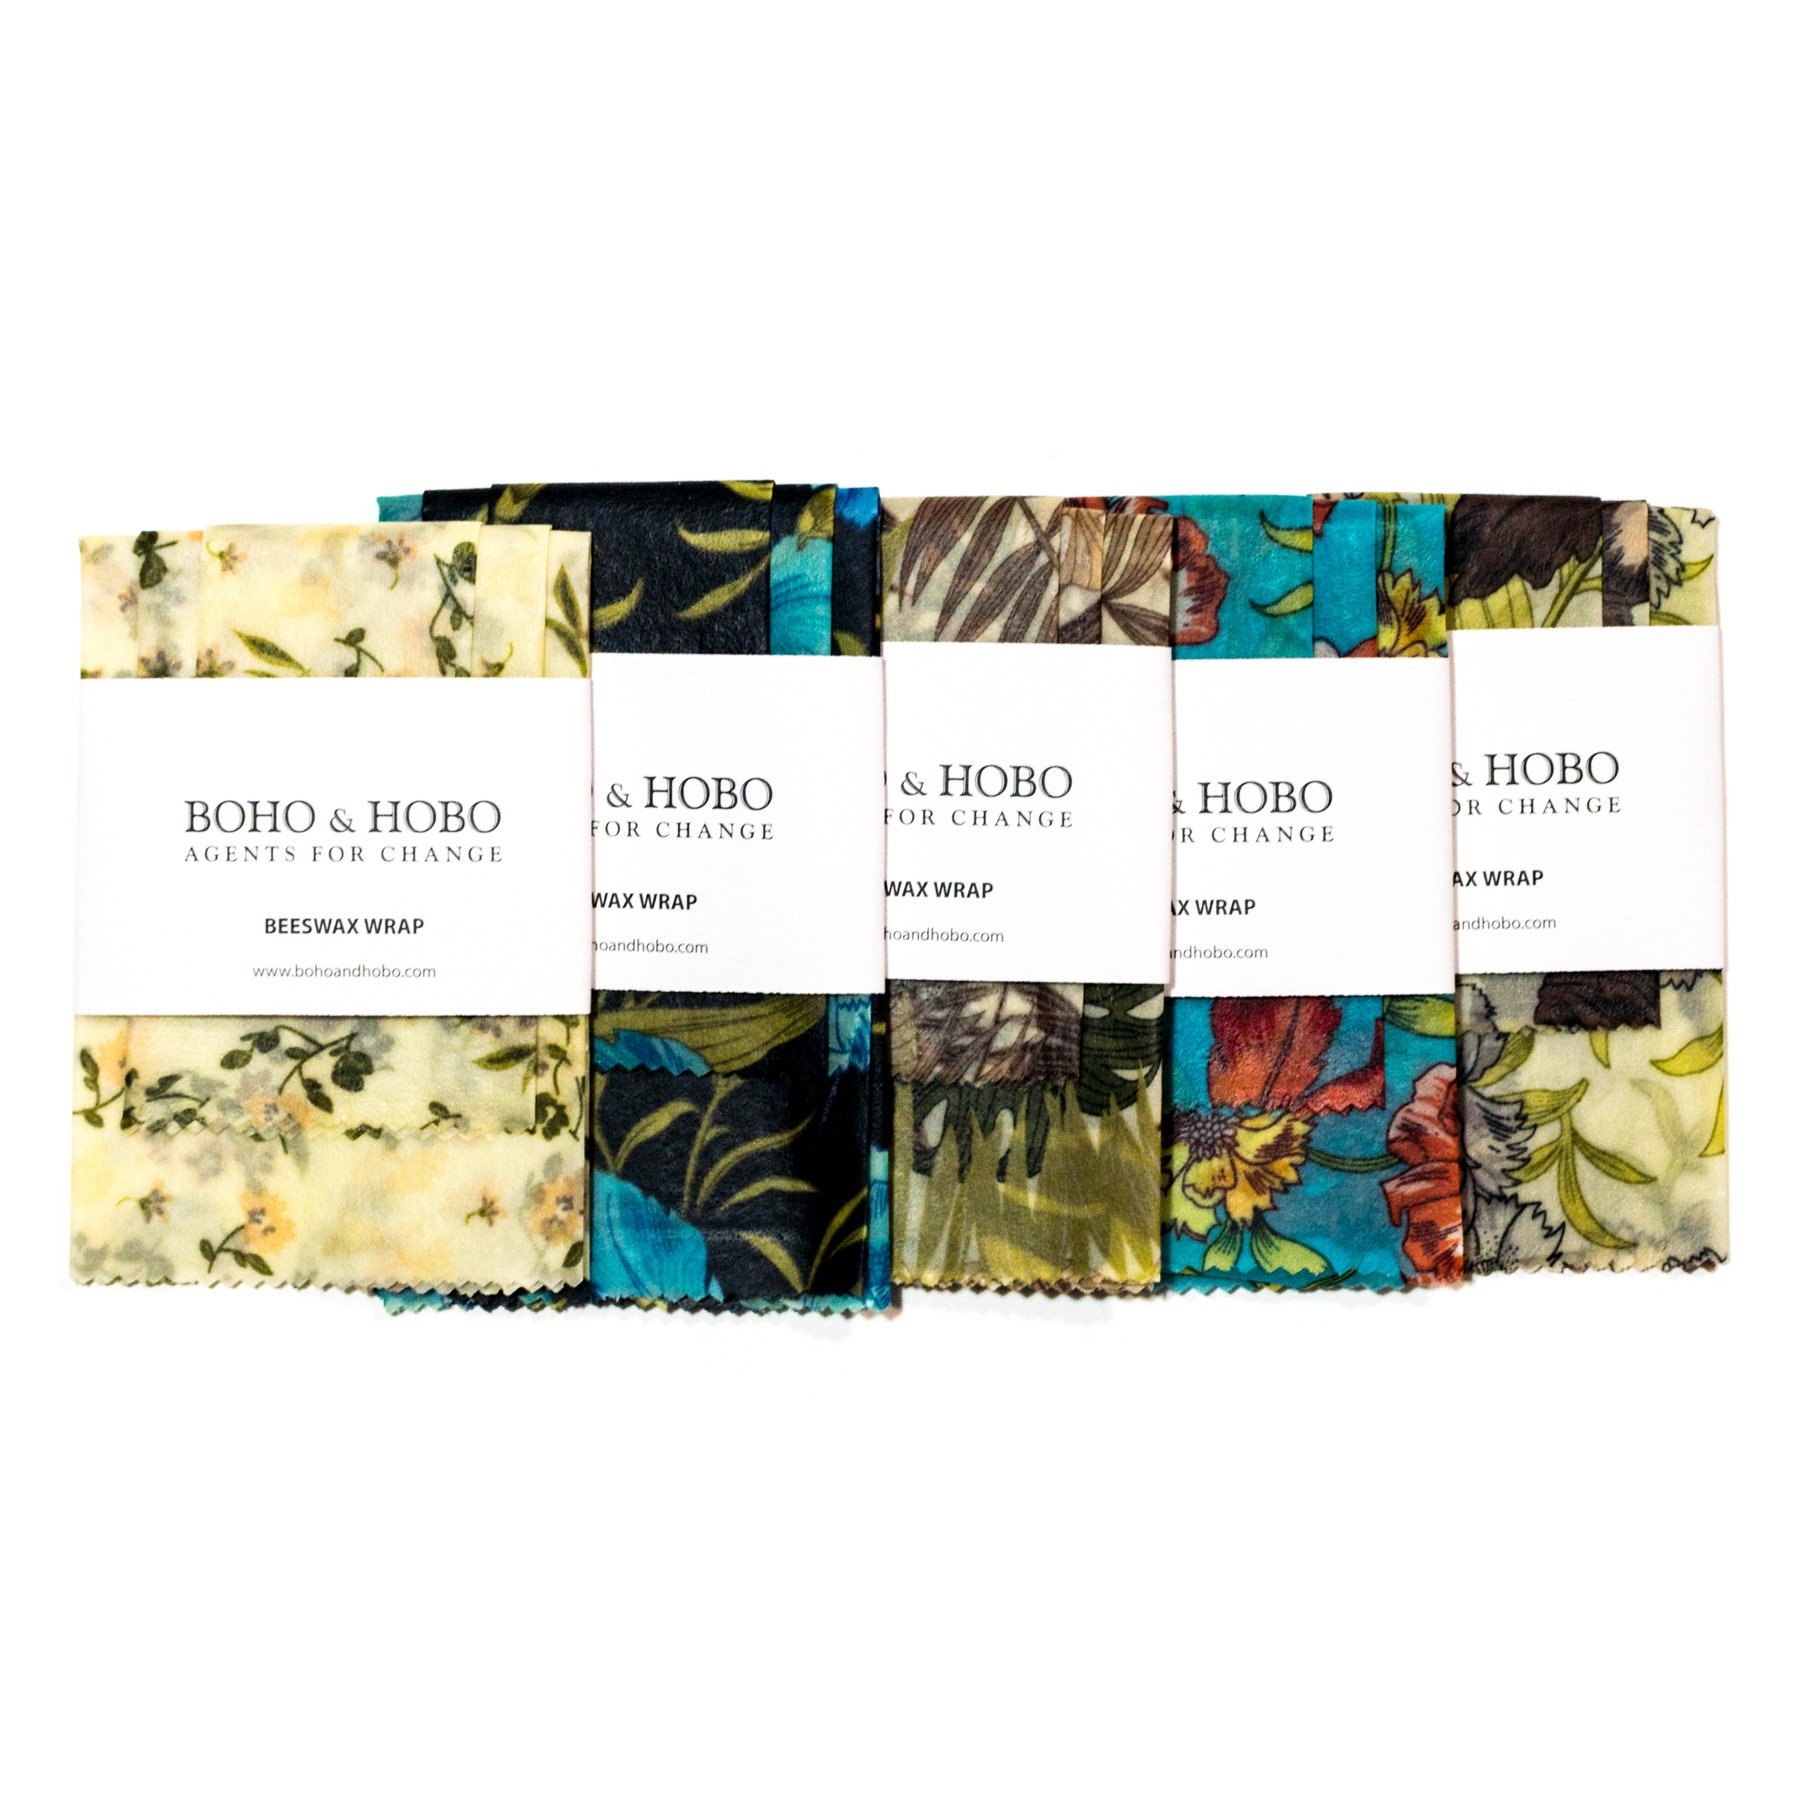 BOHO & HOBO Beeswax Wrap